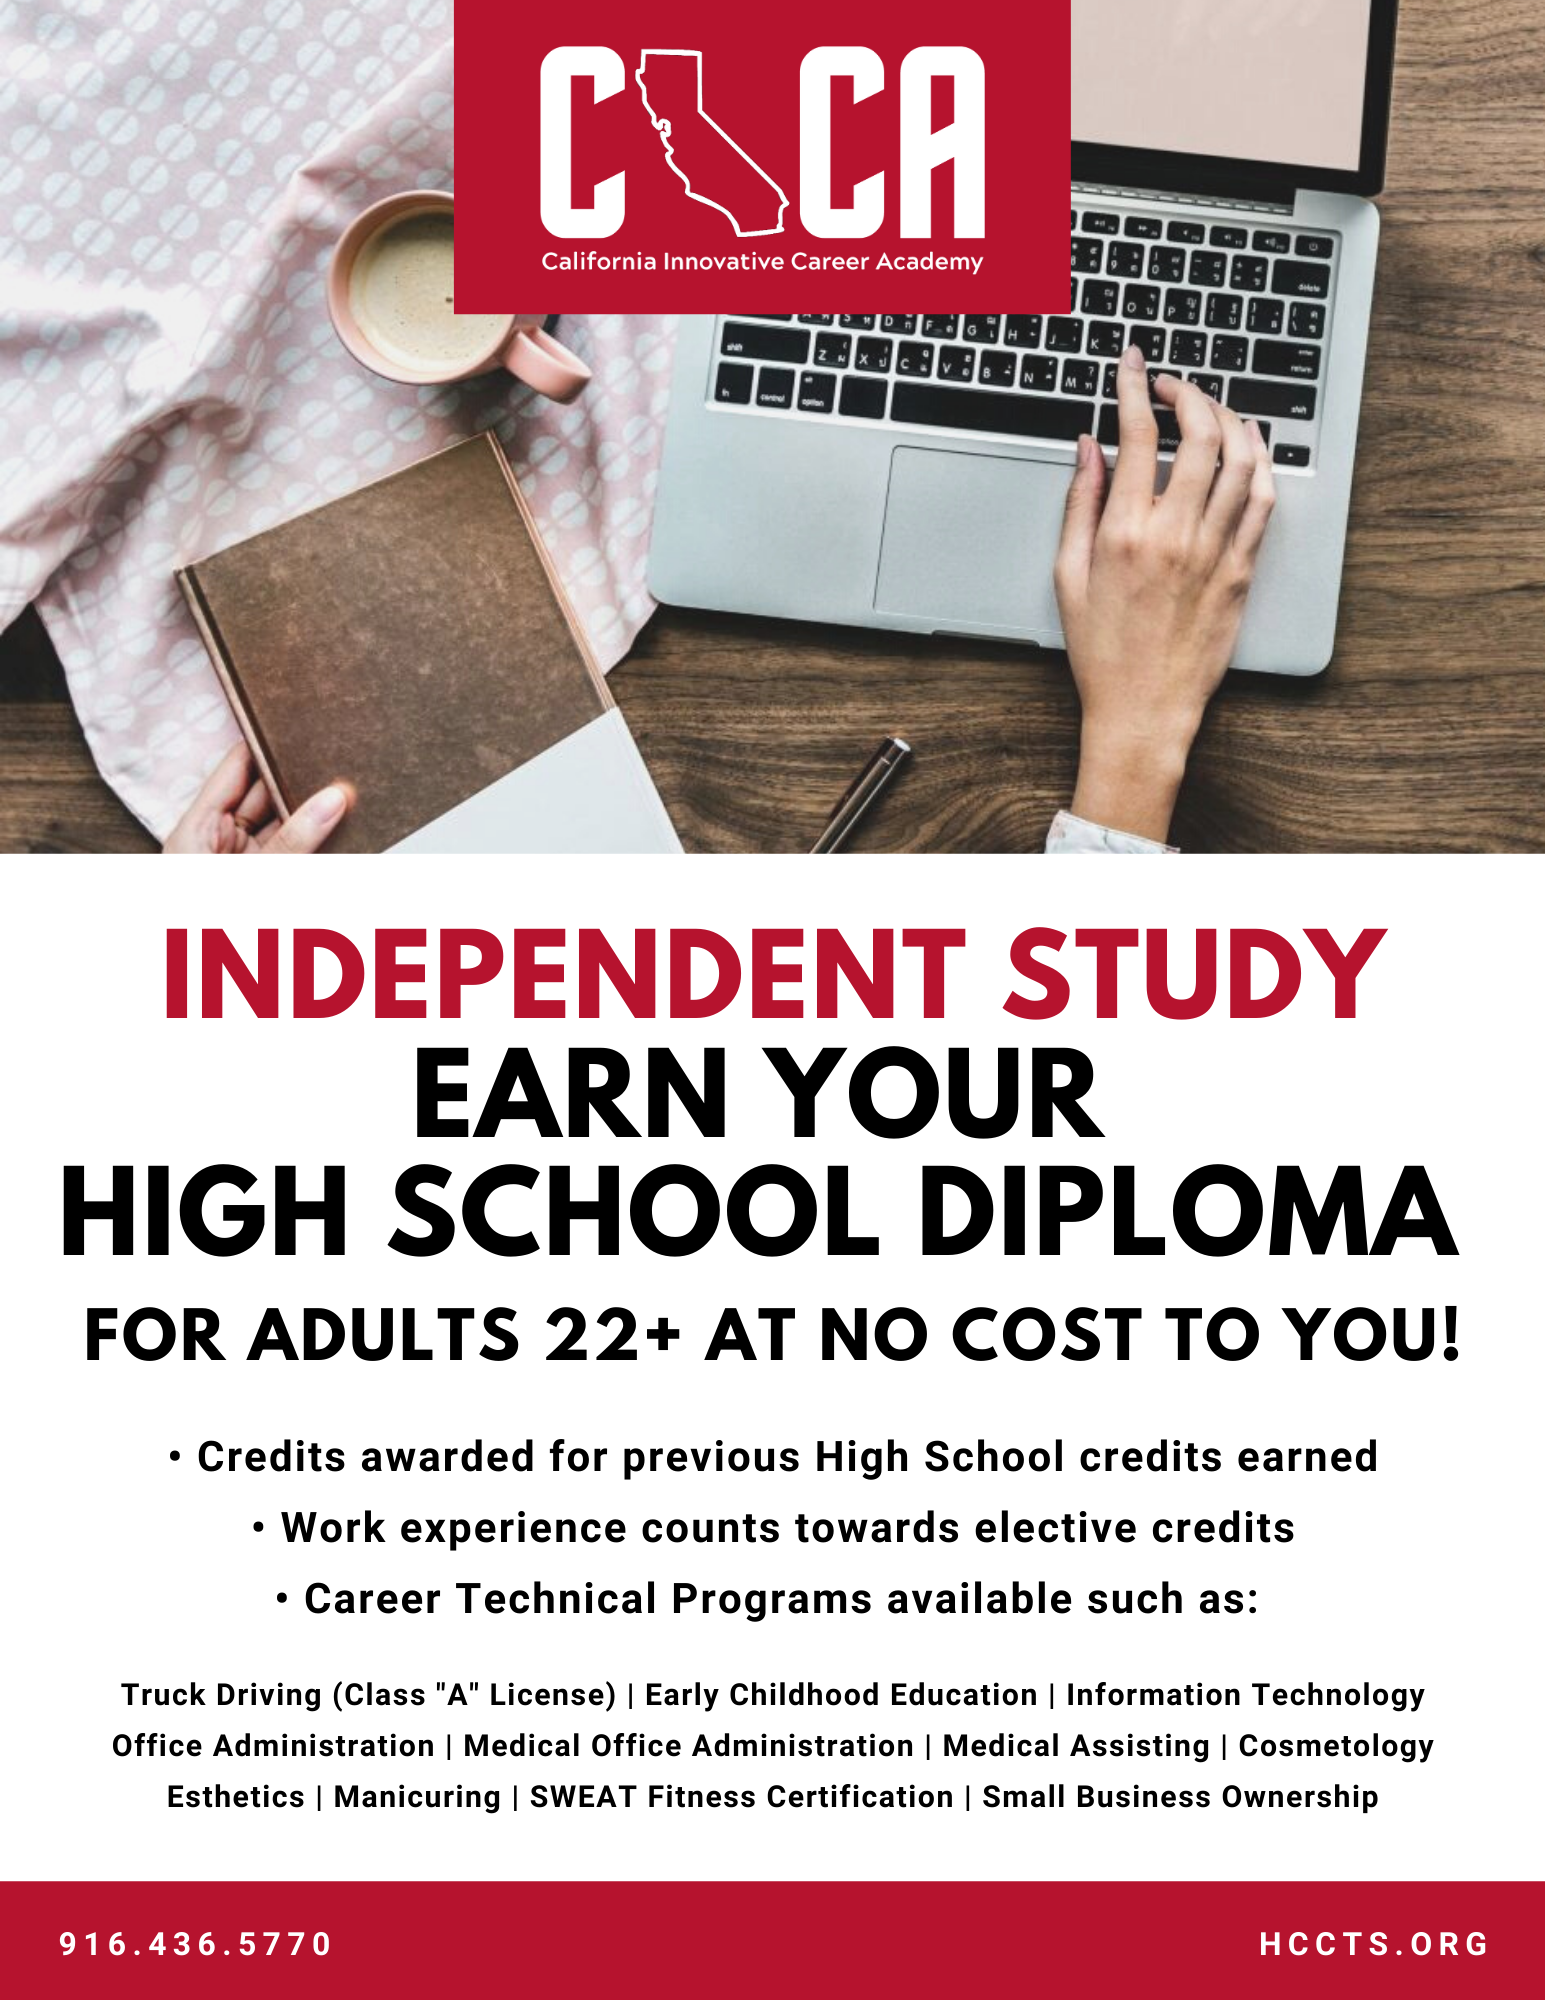 Independent Study Earn Your High School Diploma For Adults 22+ at No Cost to You! Credits awarded for previous High School credits earned, Work experience counts towards elective credits, Career Technical Programs available such as: Truck Driving (Class 'A' License), Early Childhood Education, Information Technology, Office Administration, Medical Office Administration, Medical Assisting, Cosmetology, Esthetics, Manicuring, SWEAT Fitness Certification, Small Business Ownership